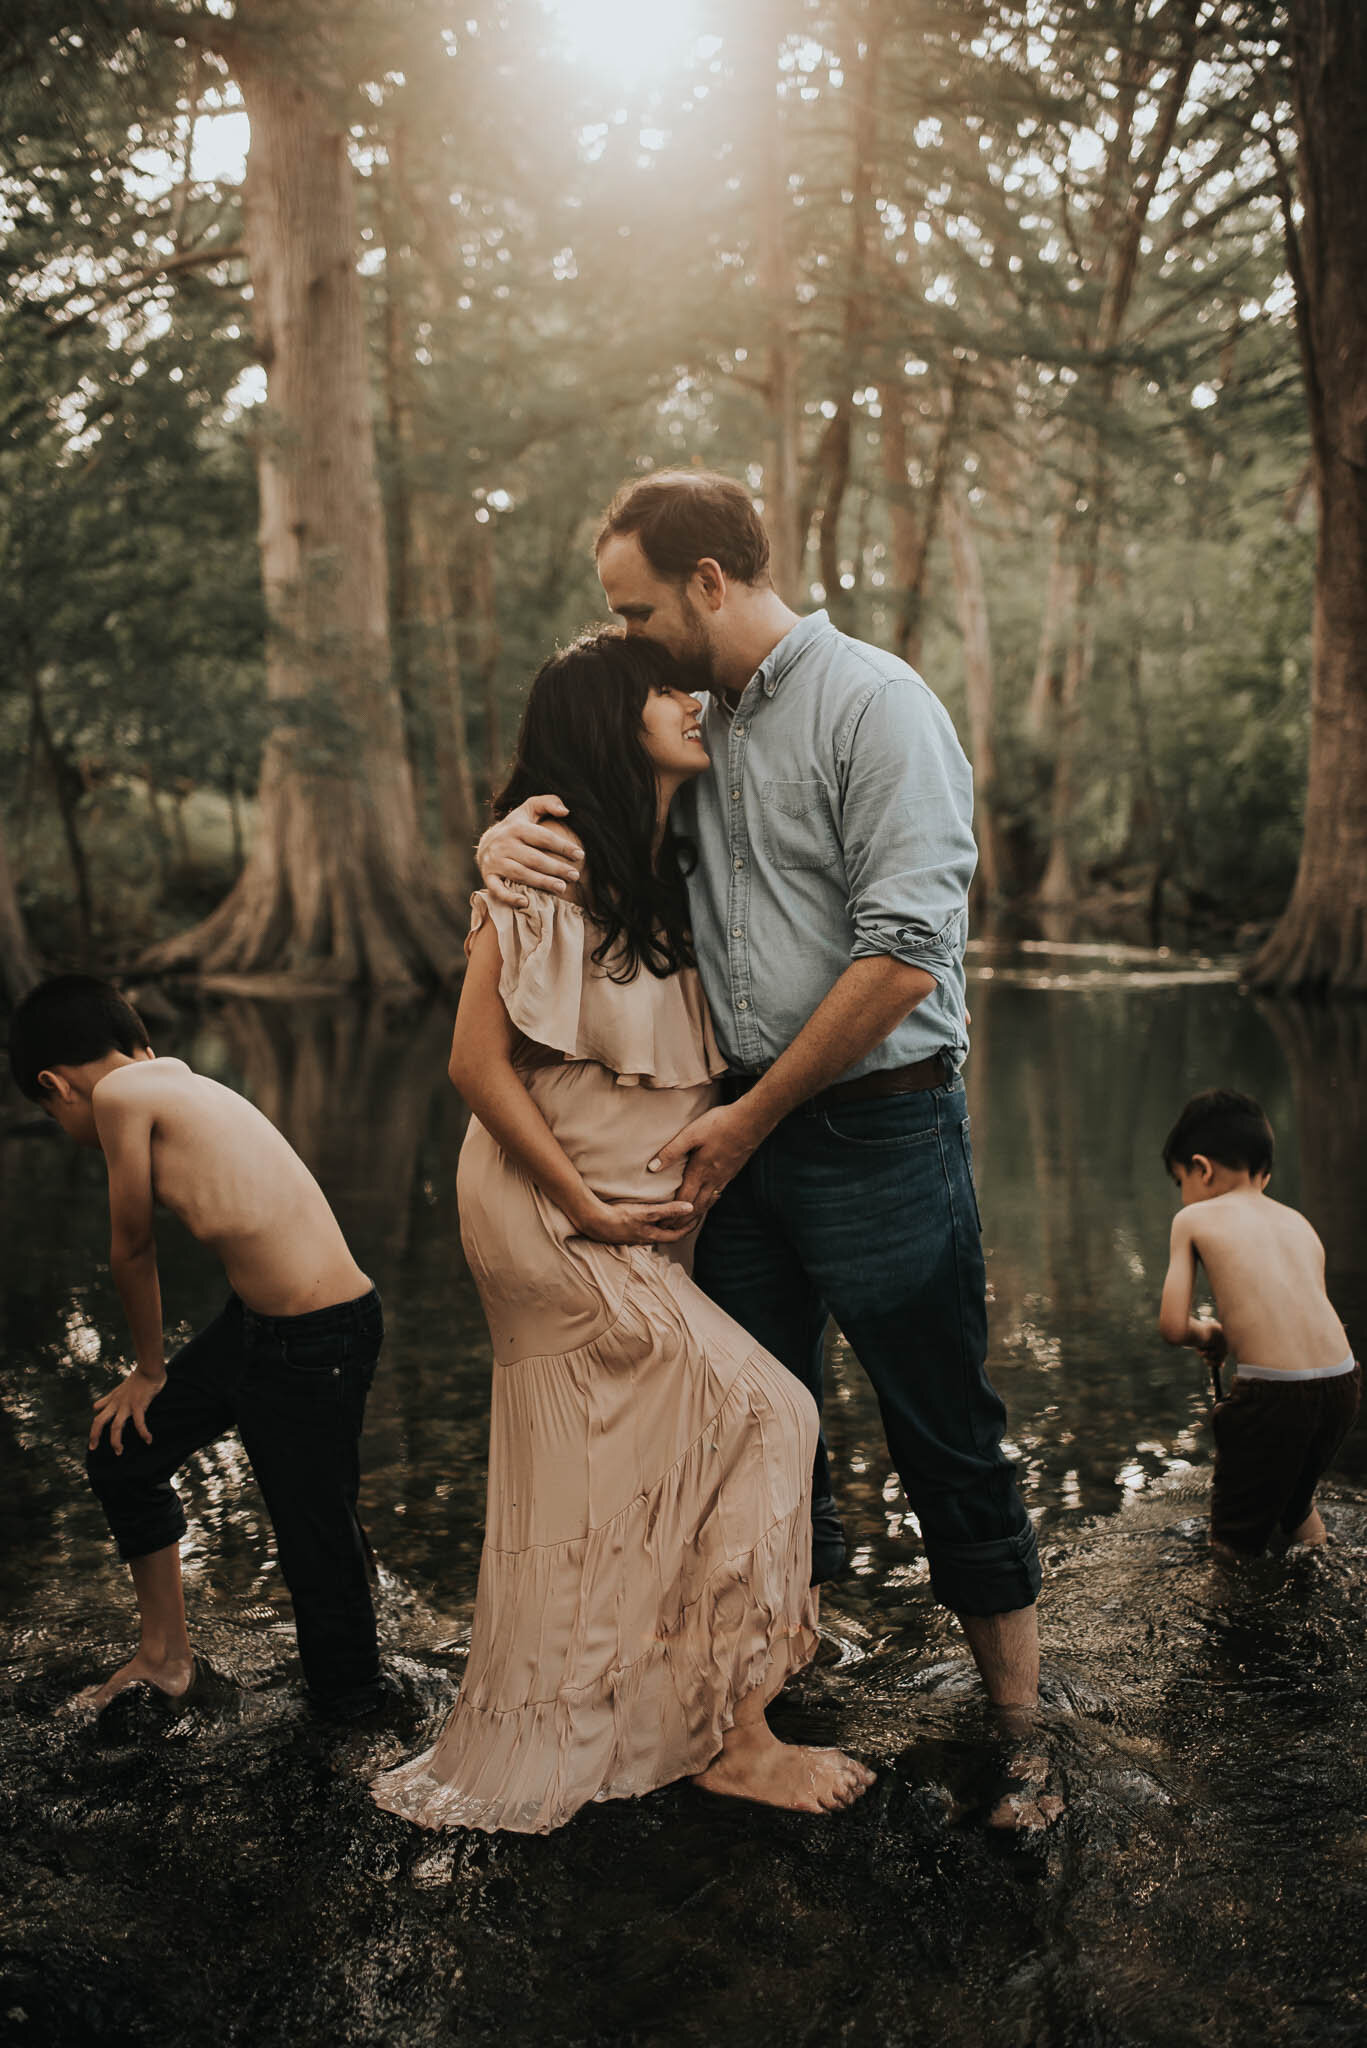 Lifestyle Maternity/Family Session at Cibilo Nature Center, Boerne, Texas.